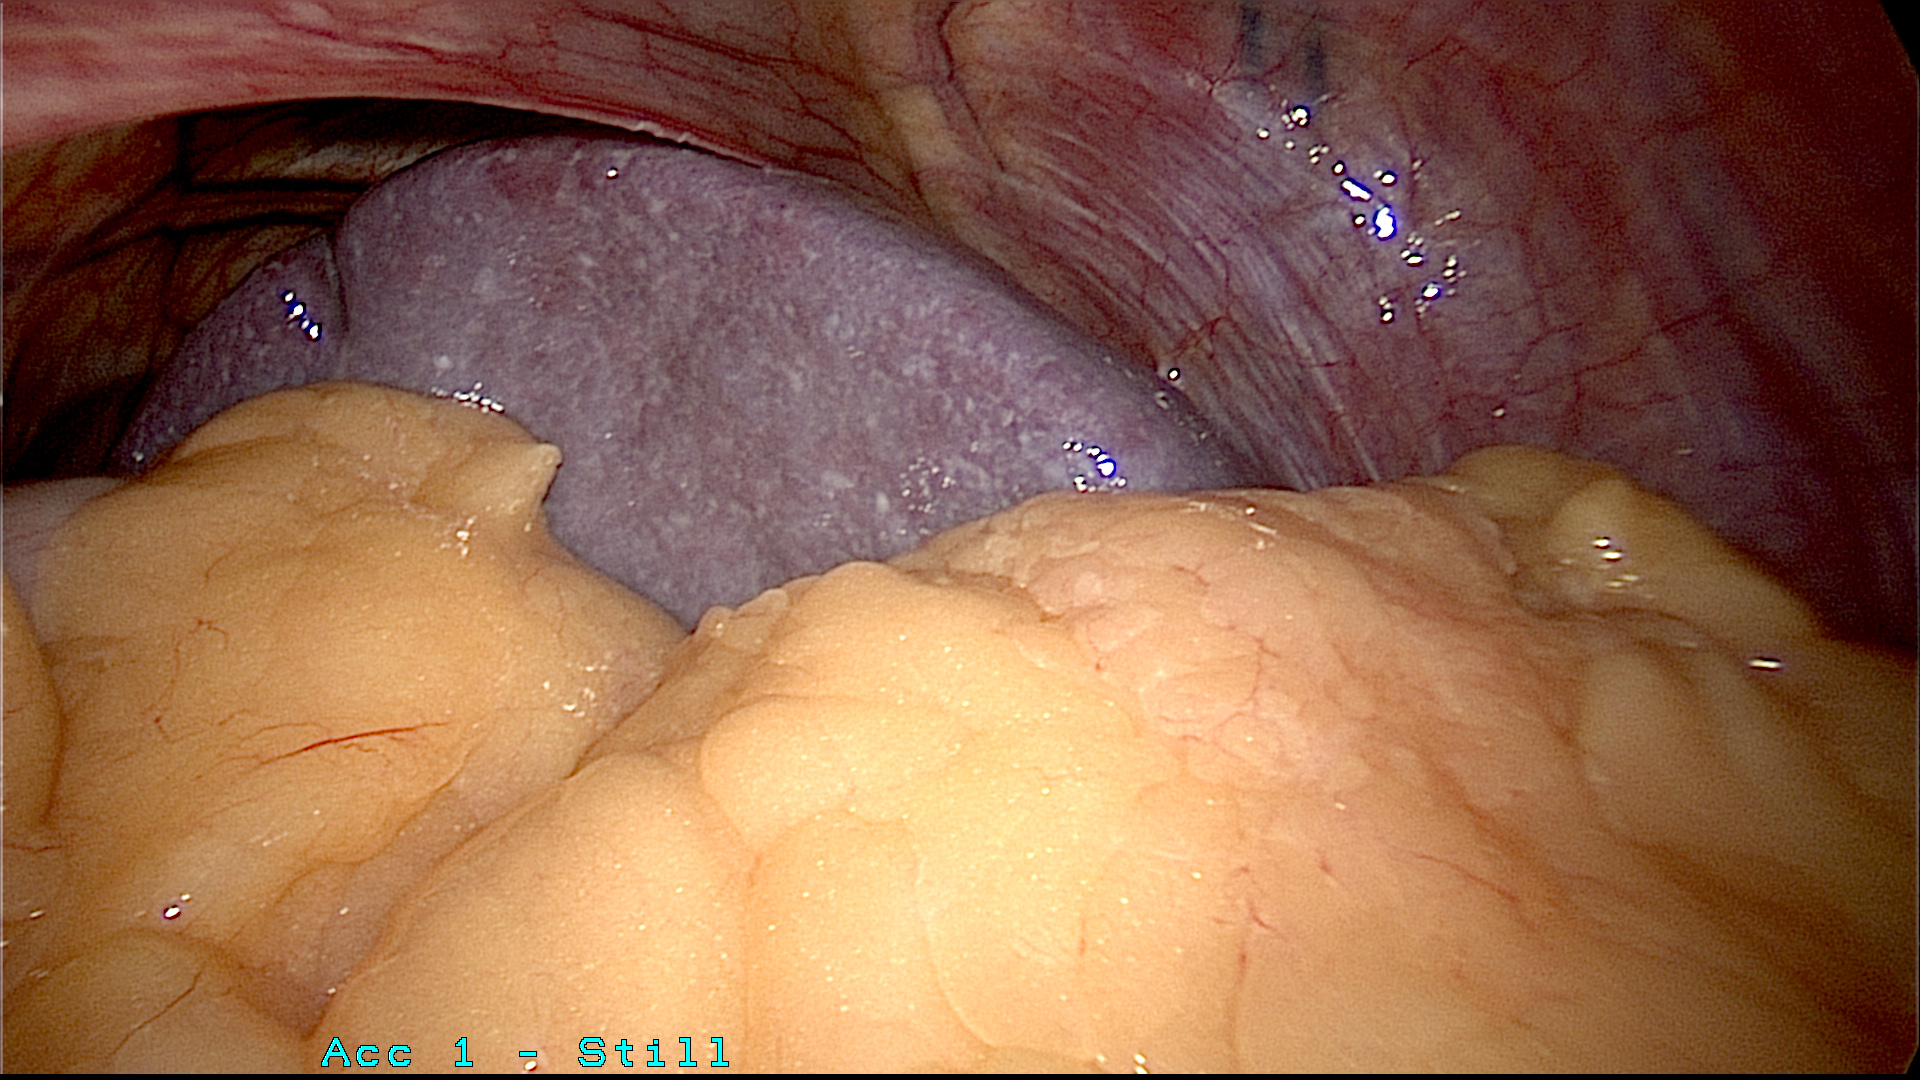 Spleen near the stomach